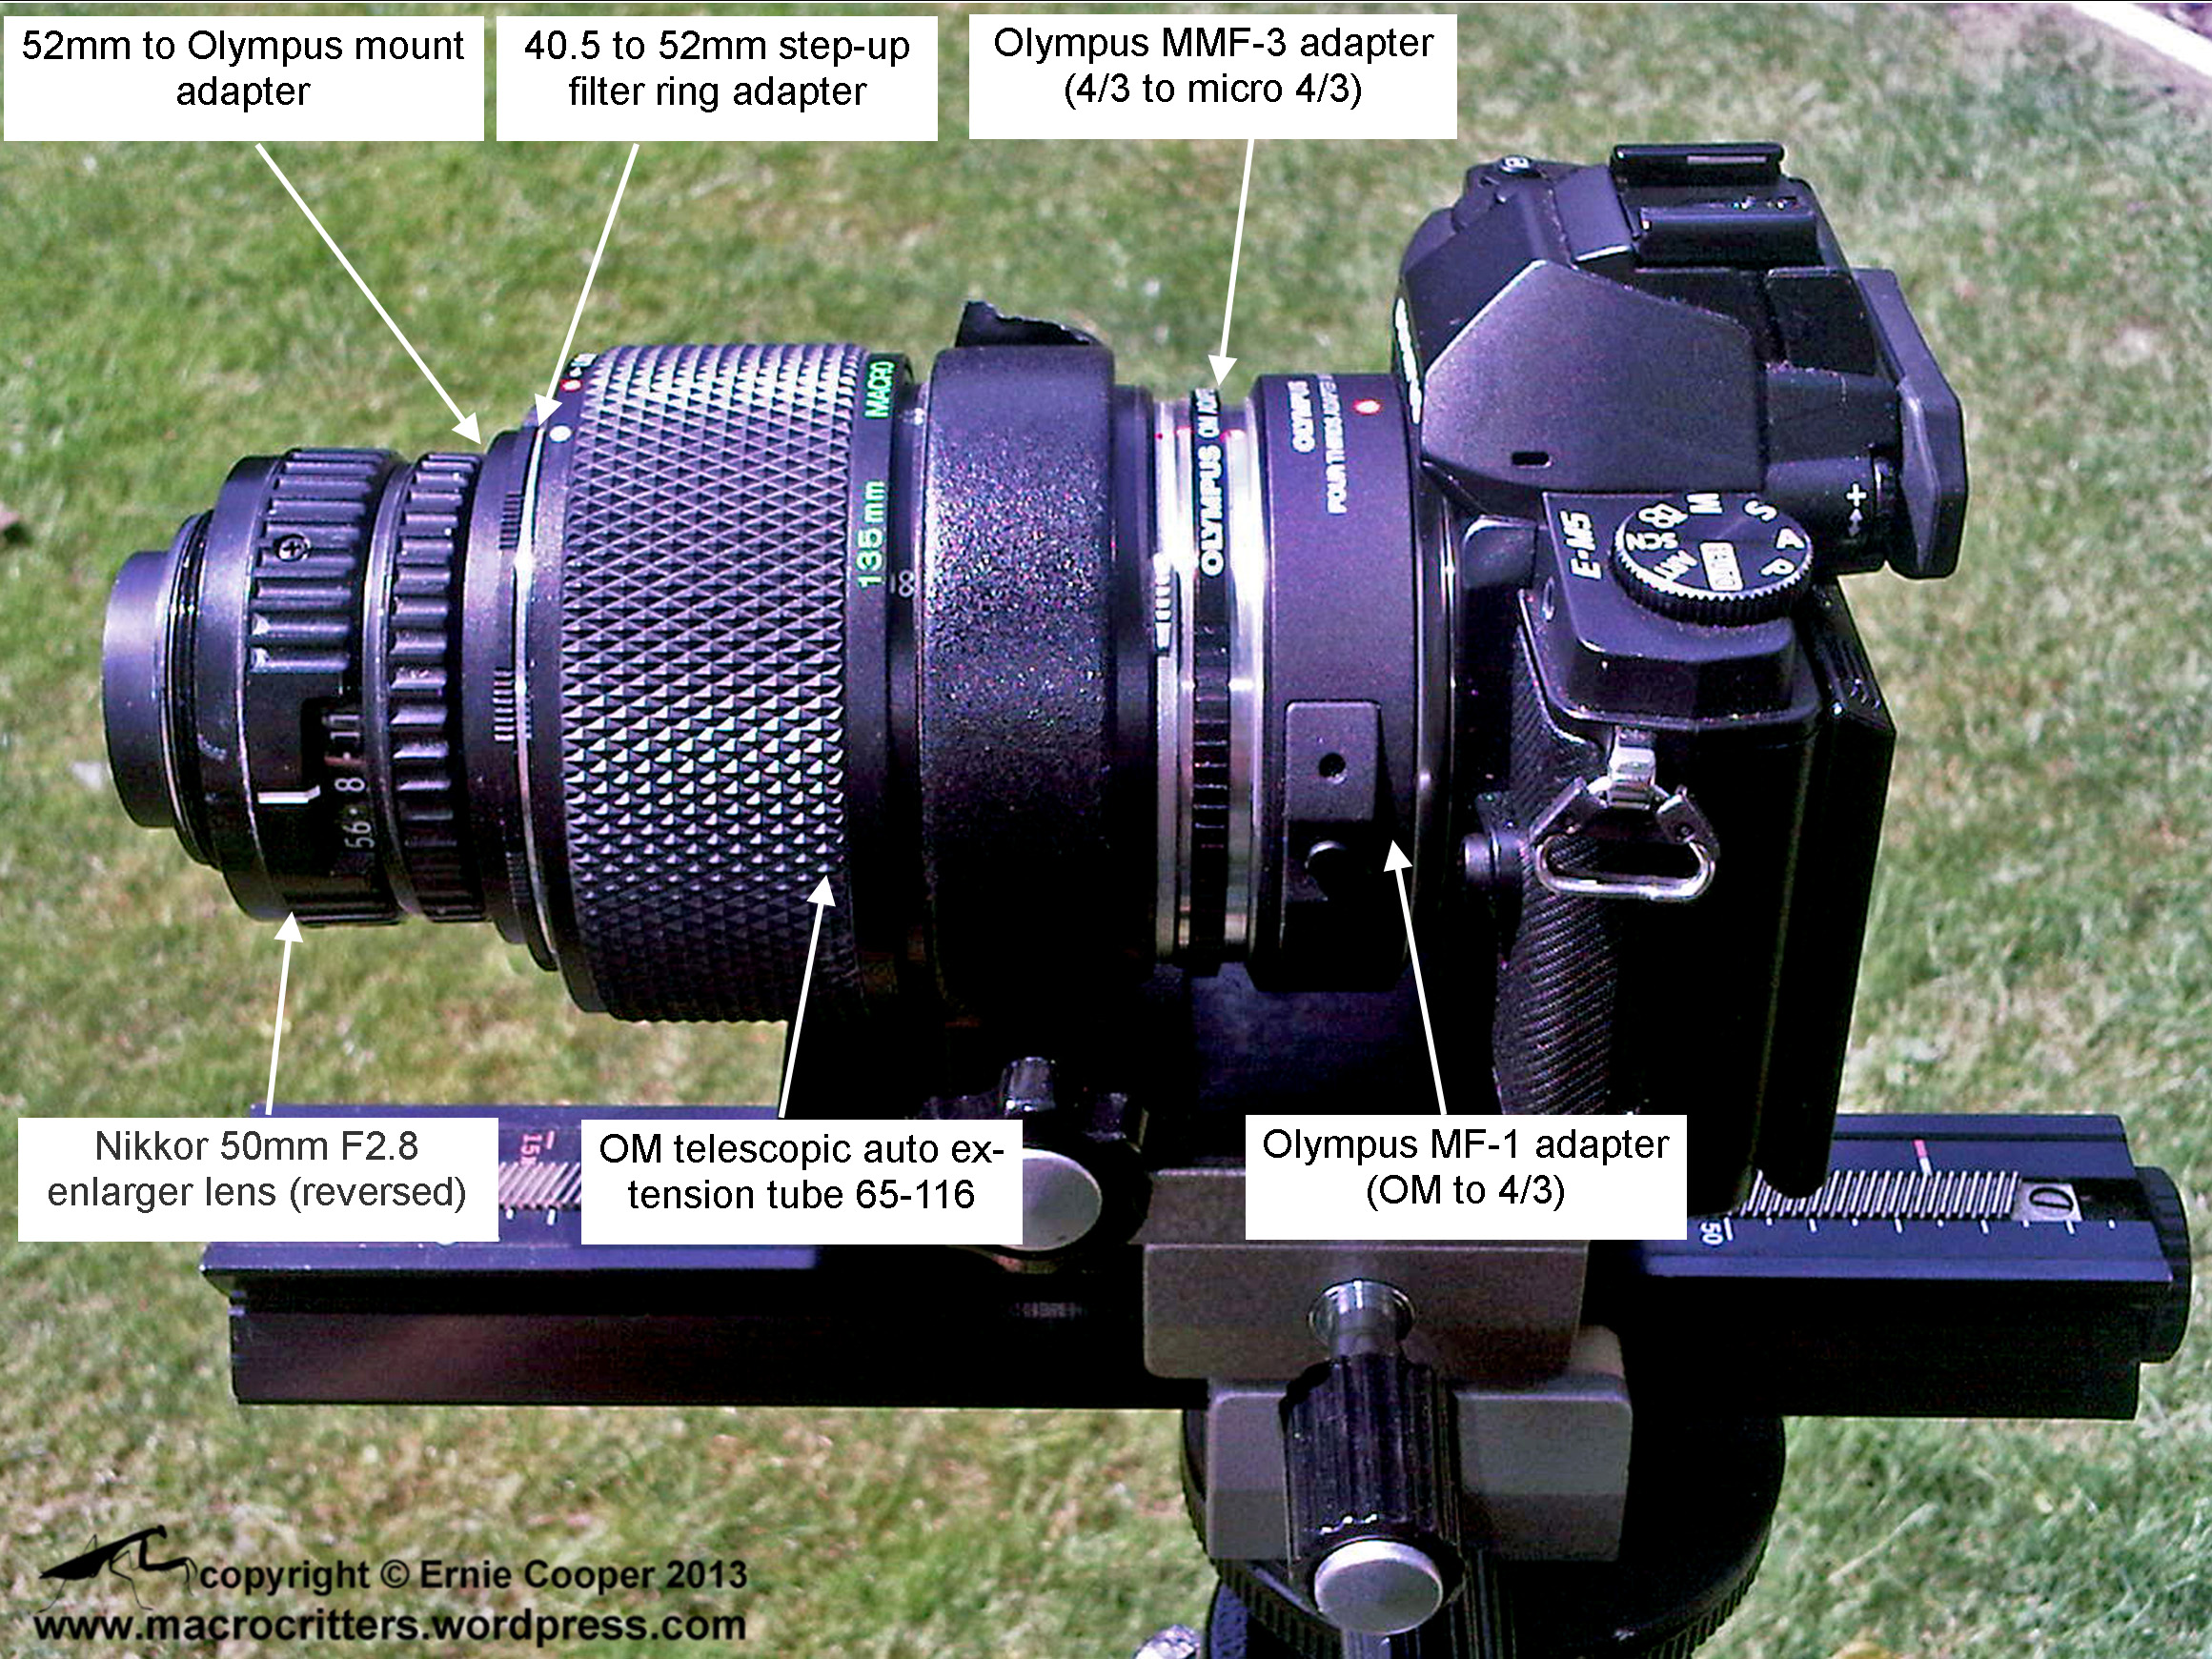 Nikkor enlarger lens | macrocritters